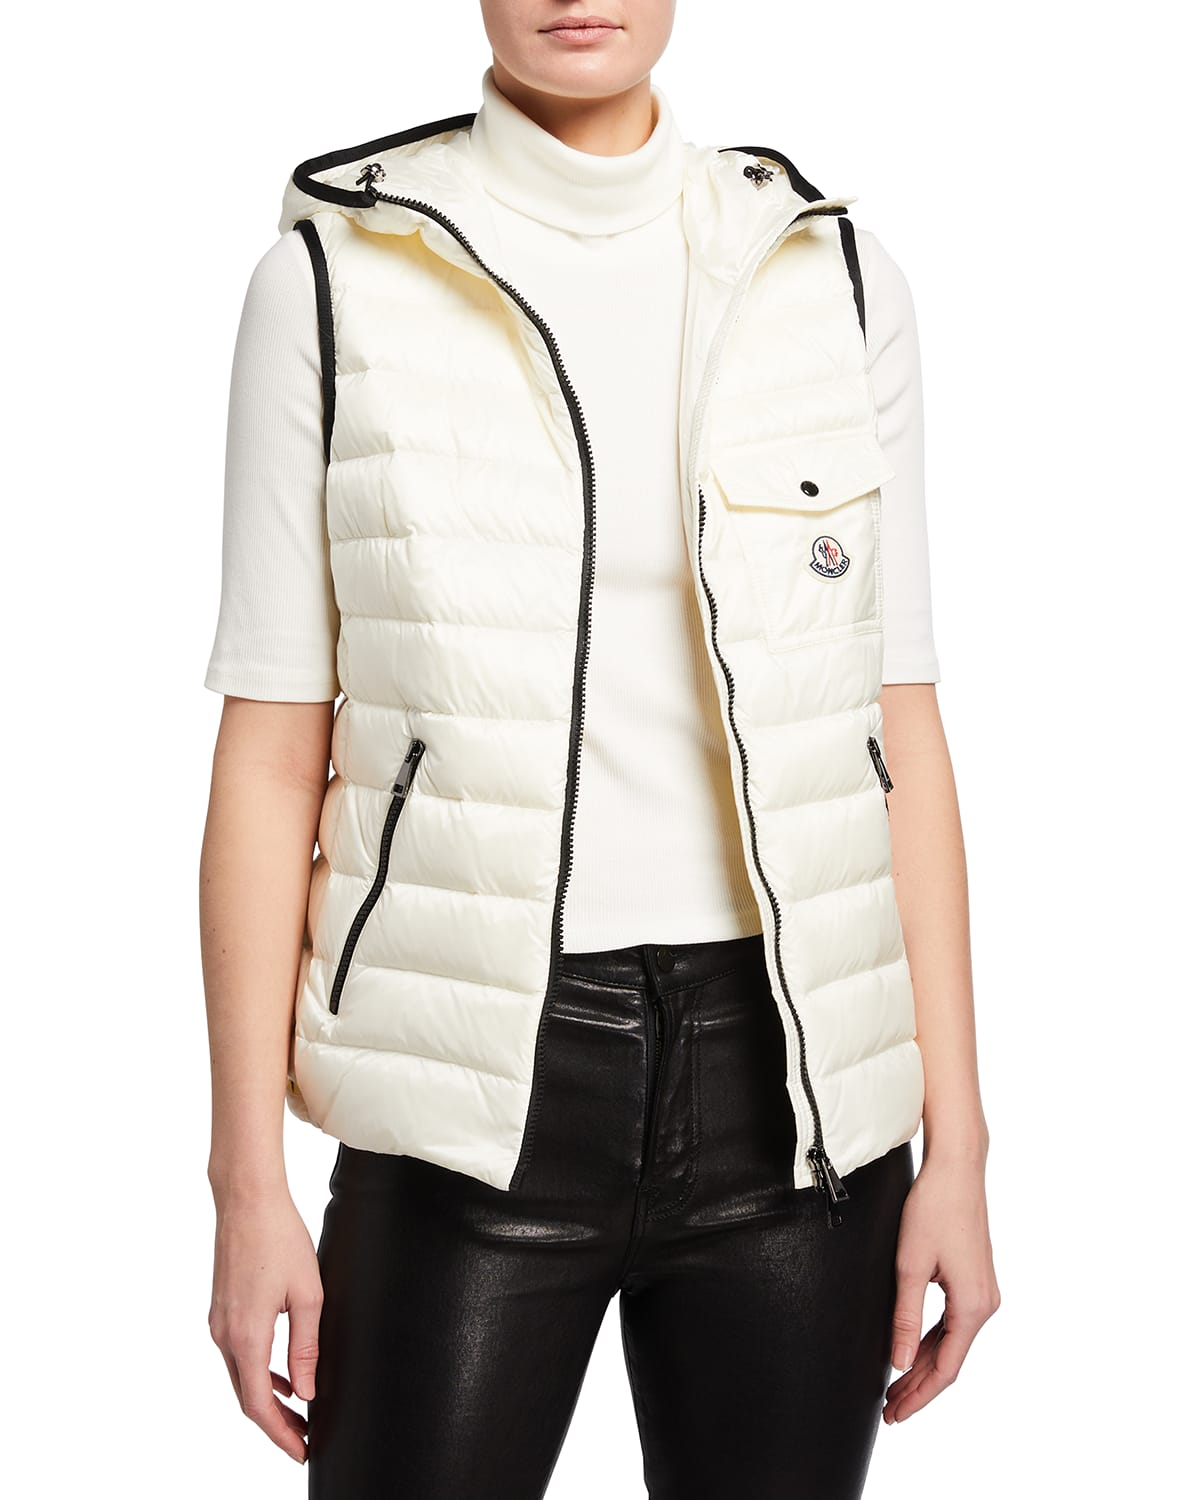 Glyco Hooded Puffer Vest